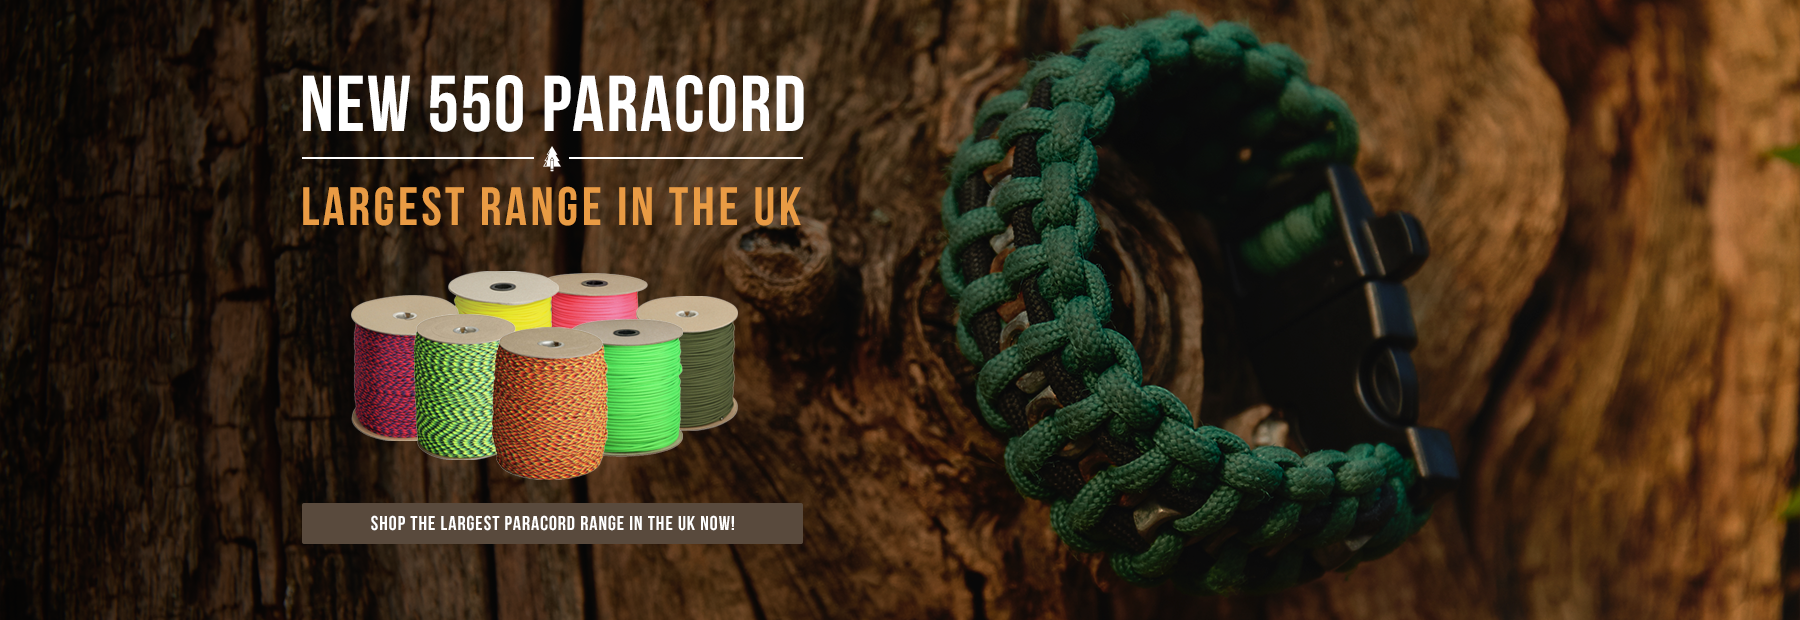 New 550 Paracord - Largest Range in the UK